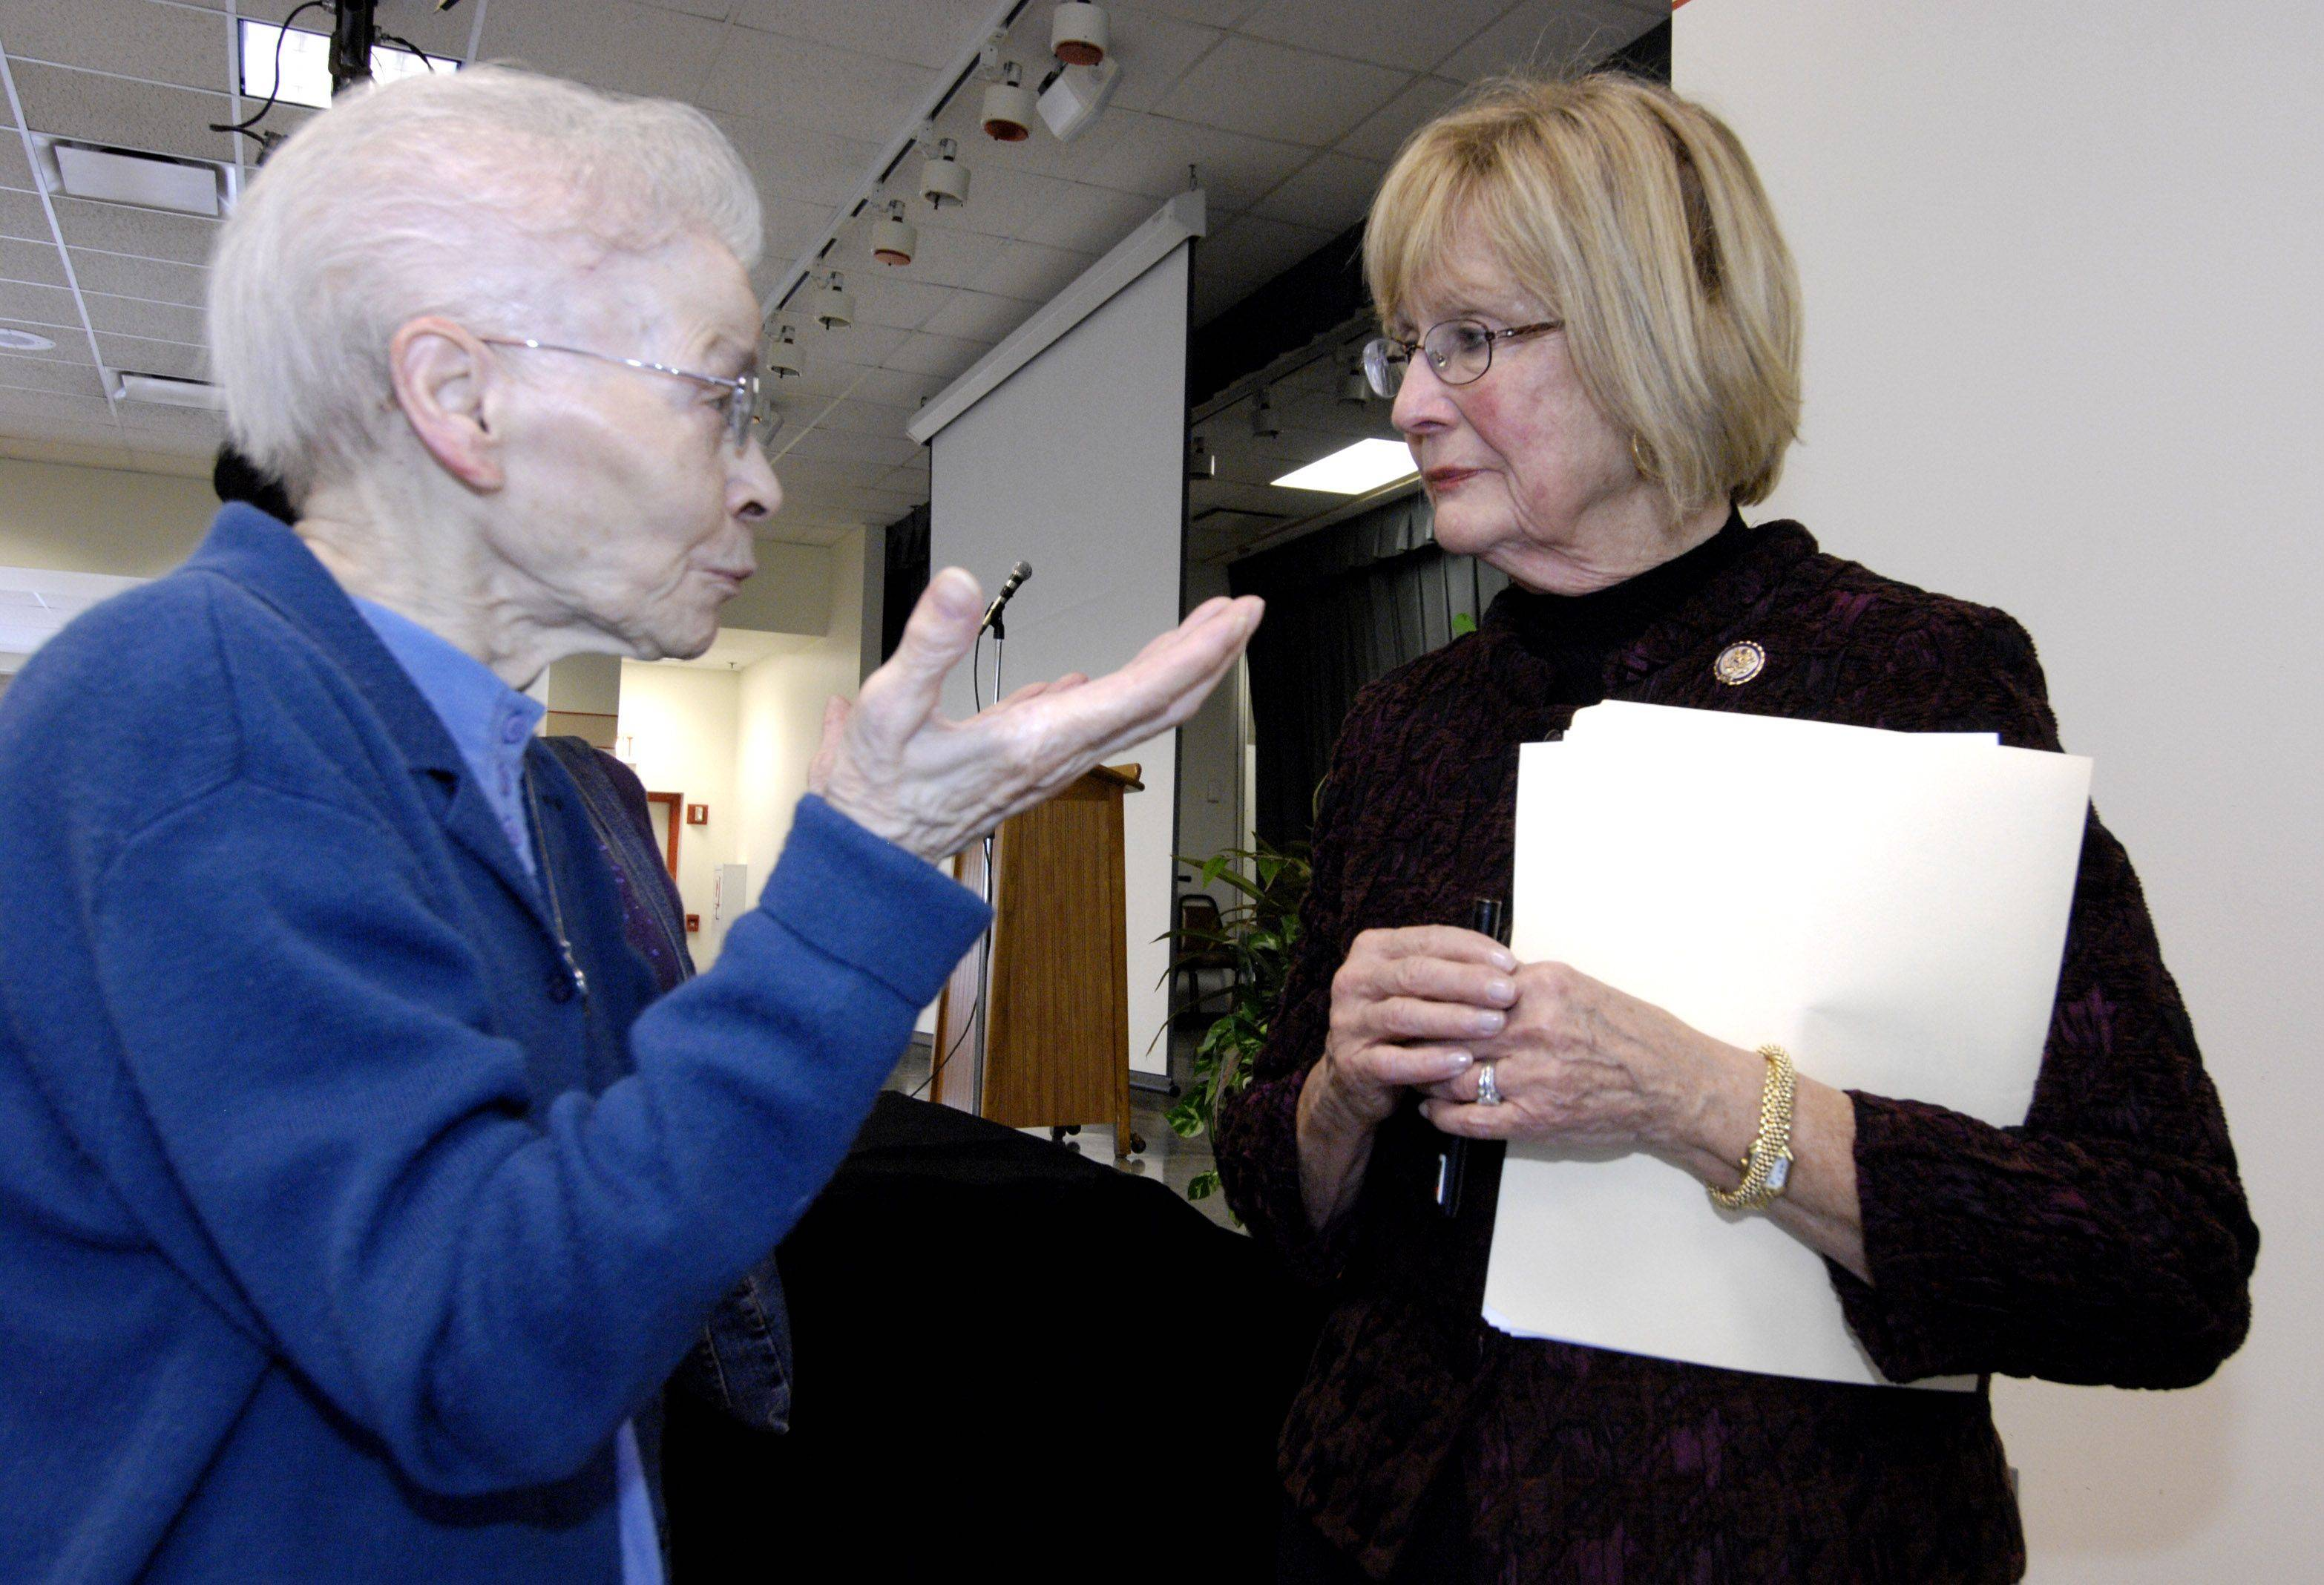 Yolanda Gentile talks with U.S. Rep. Judy Biggert after a town-hall meeting on the 2012 federal budget Wednesday at Mayslake Village in Oak Brook.